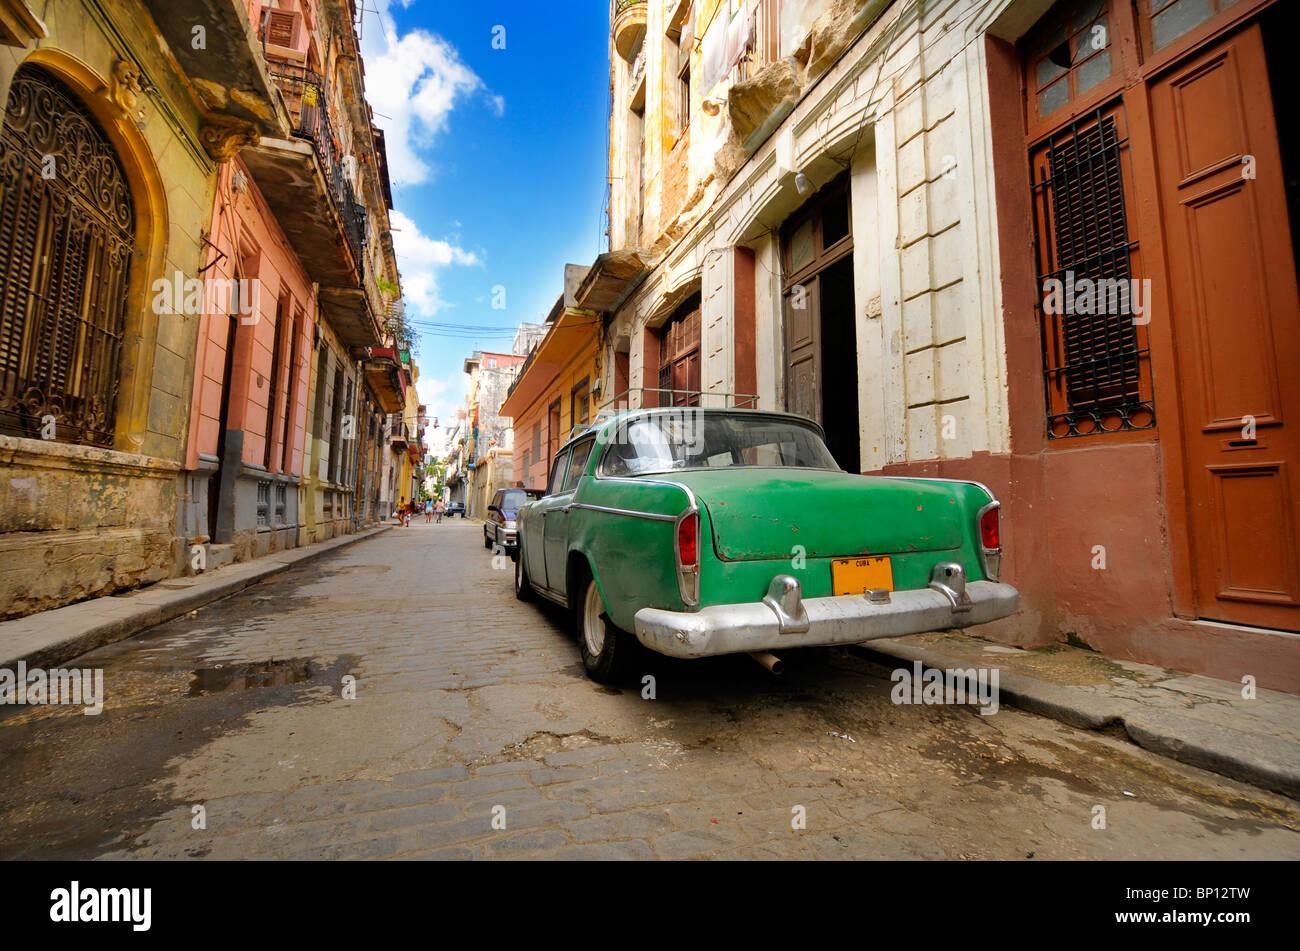 Vintage car parked in shabby Old Havana street with crumbling facades - Stock Image